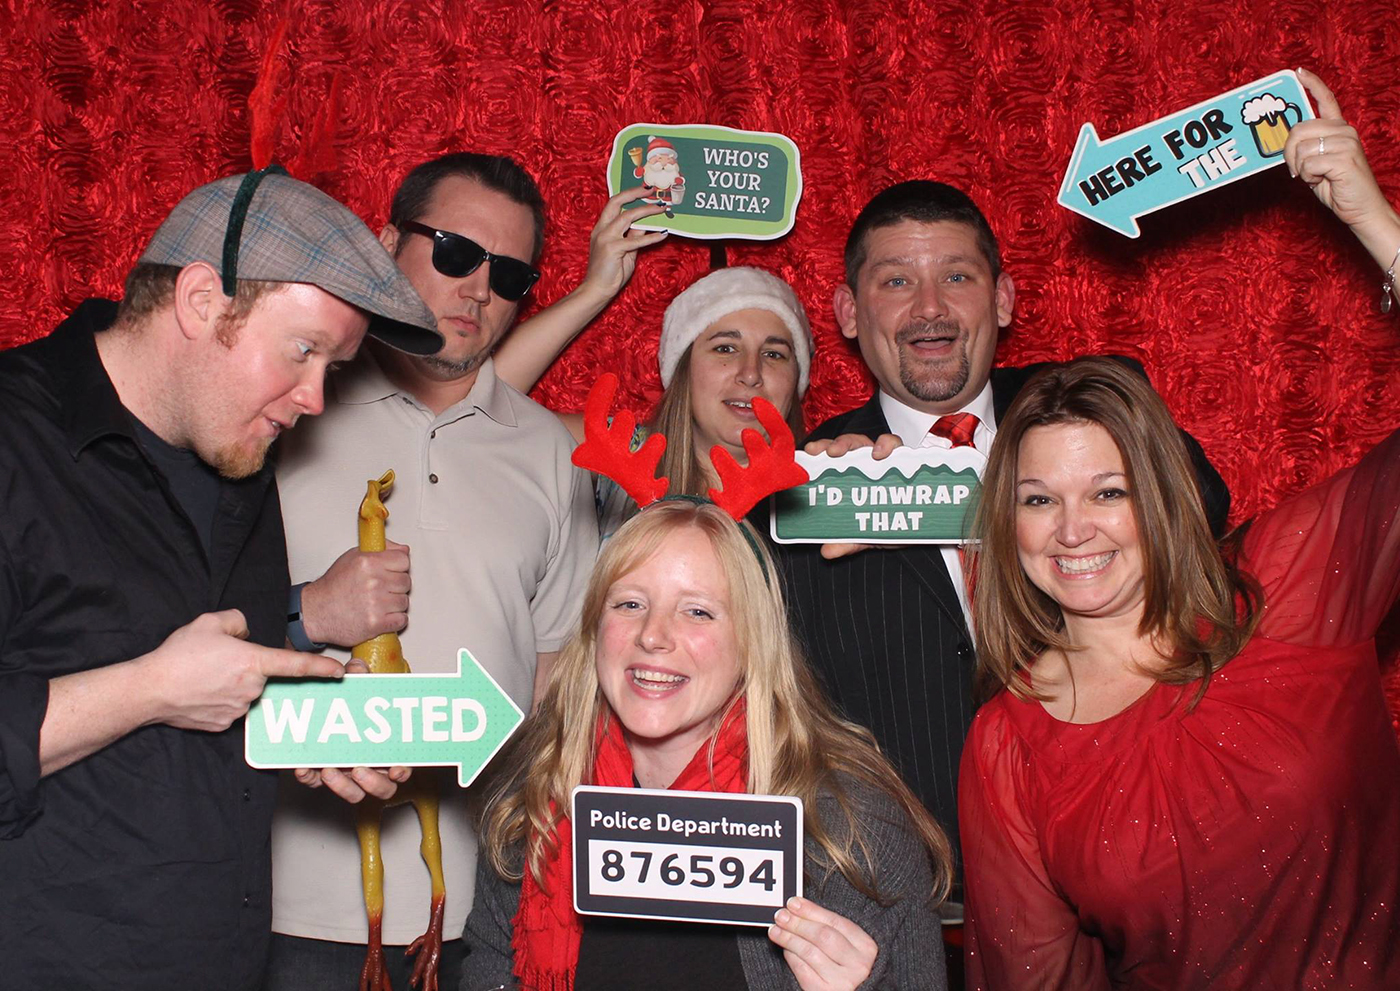 All Occasions Photography Albany NY - Wedding Photography Funny Photographers Holding Silly Christmas Signs